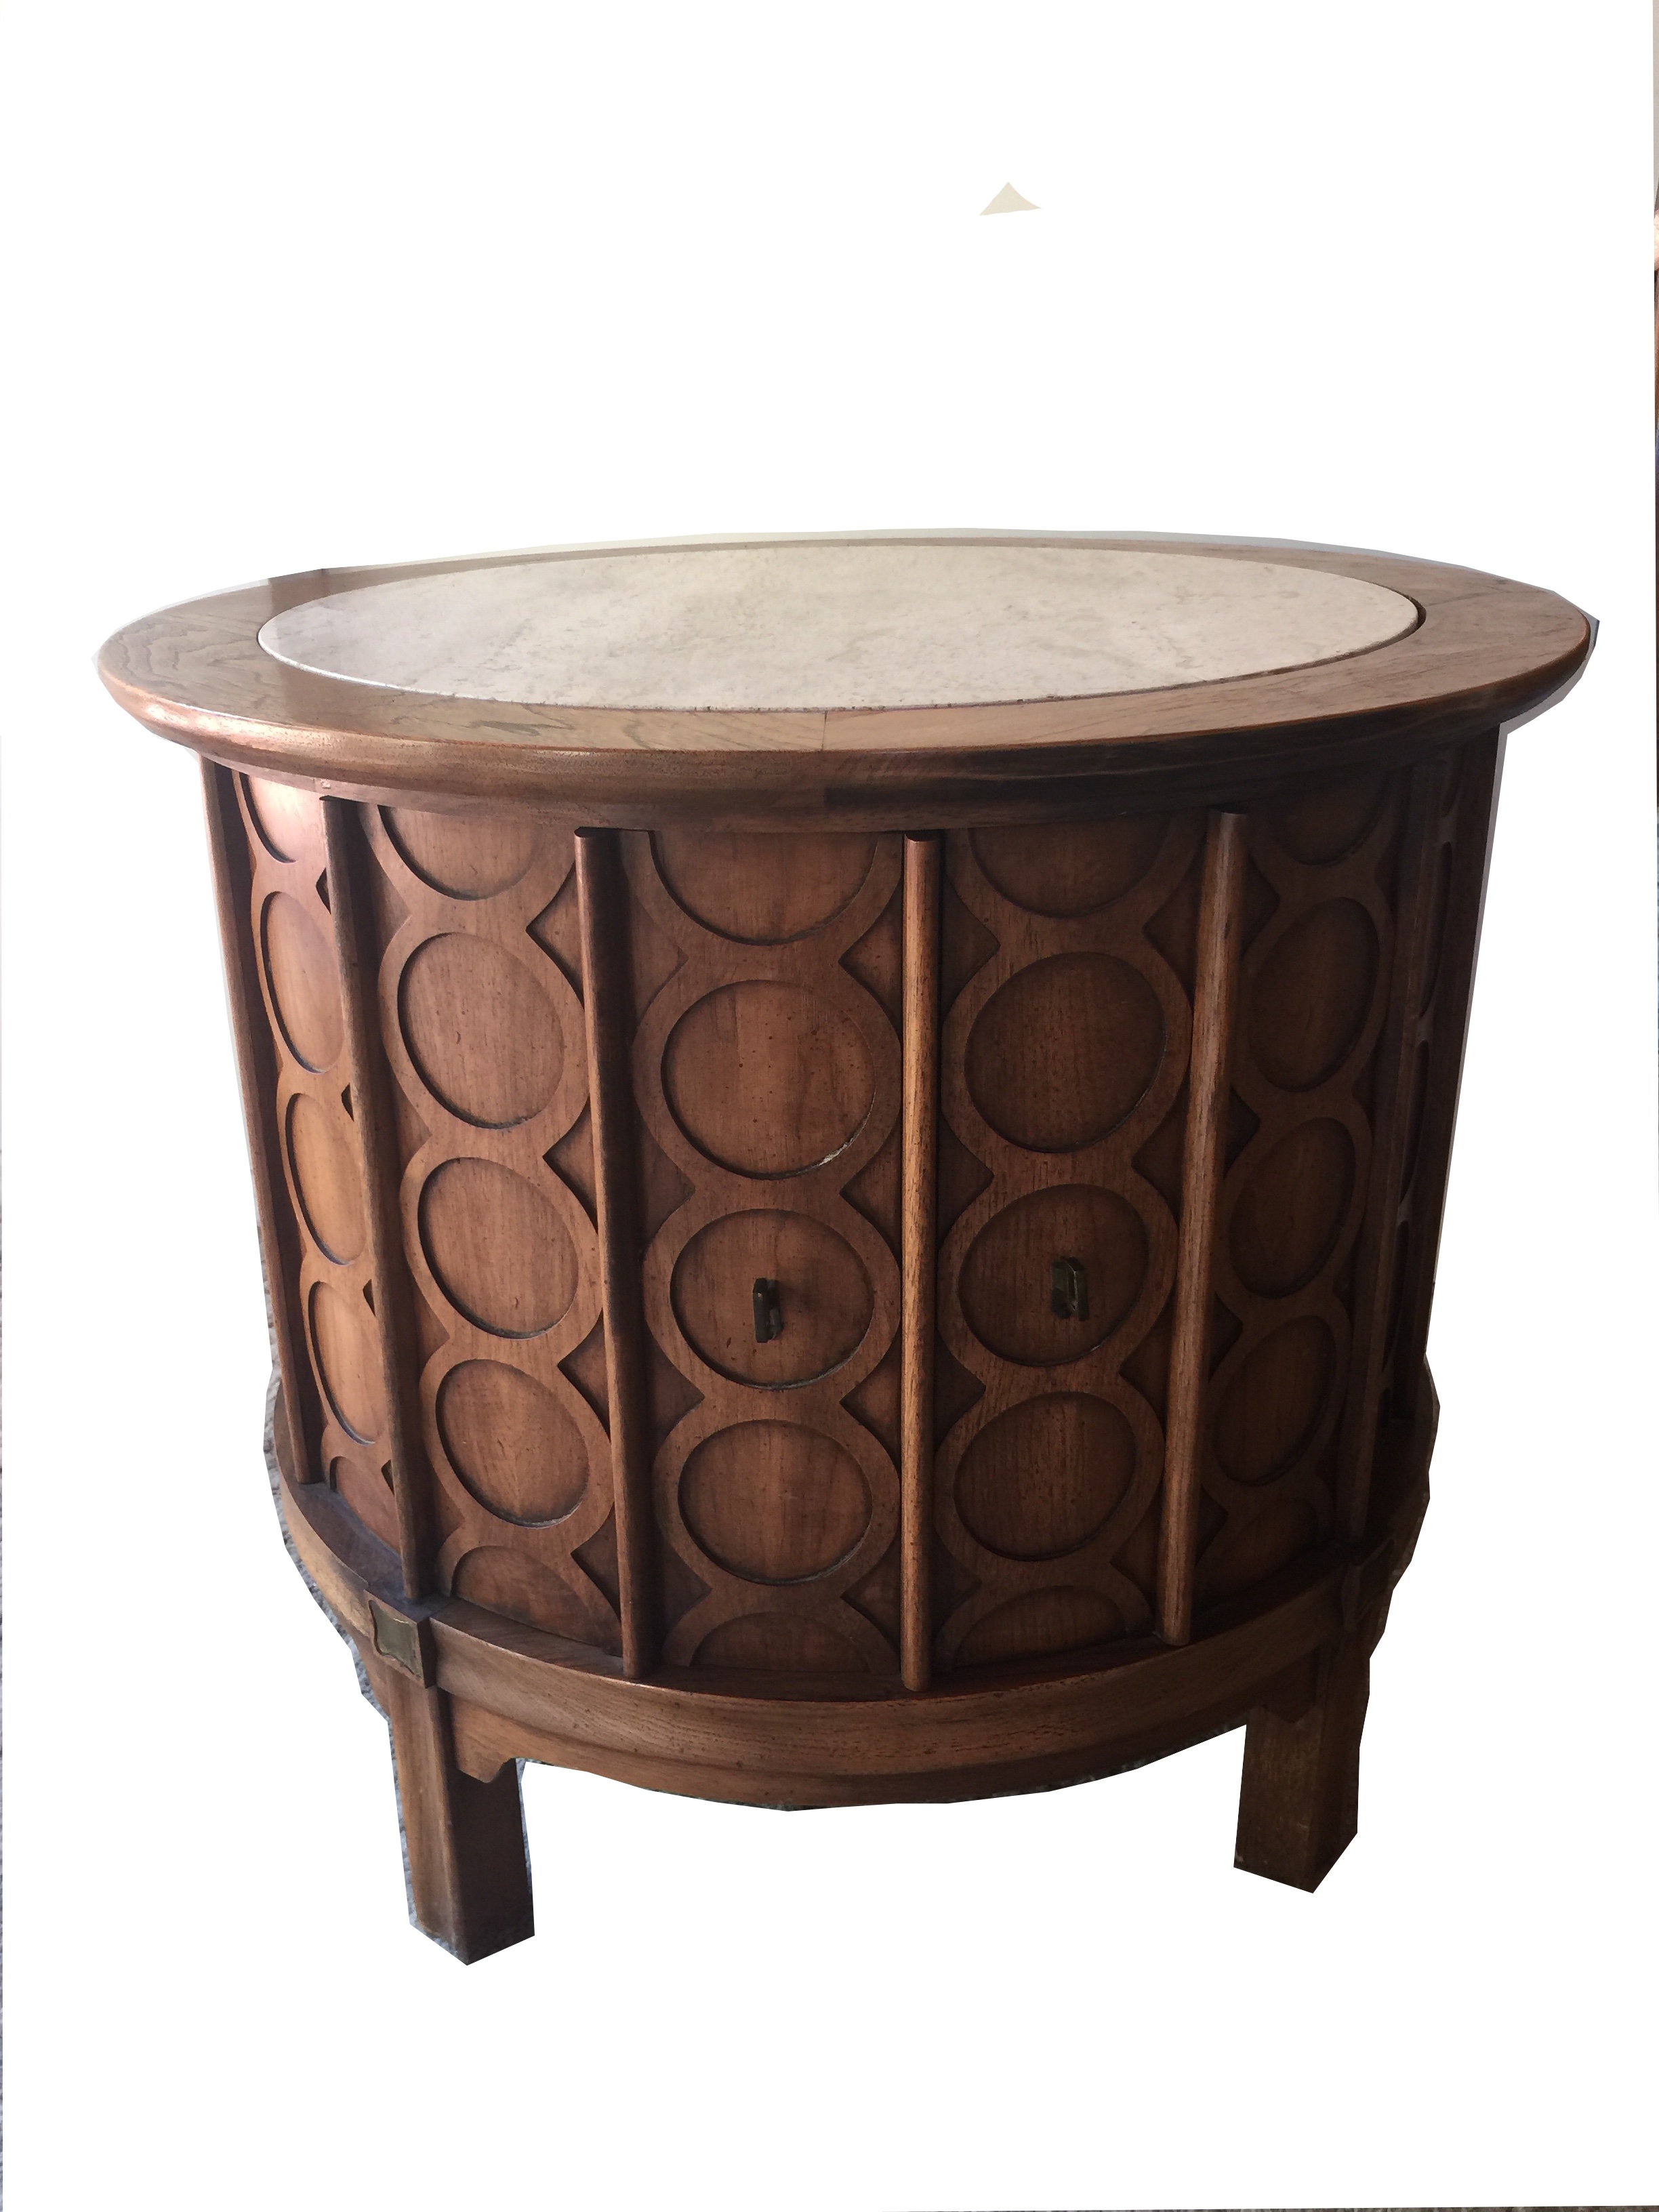 Thomasville MidCentury Round Travertine Top Commode Chairish